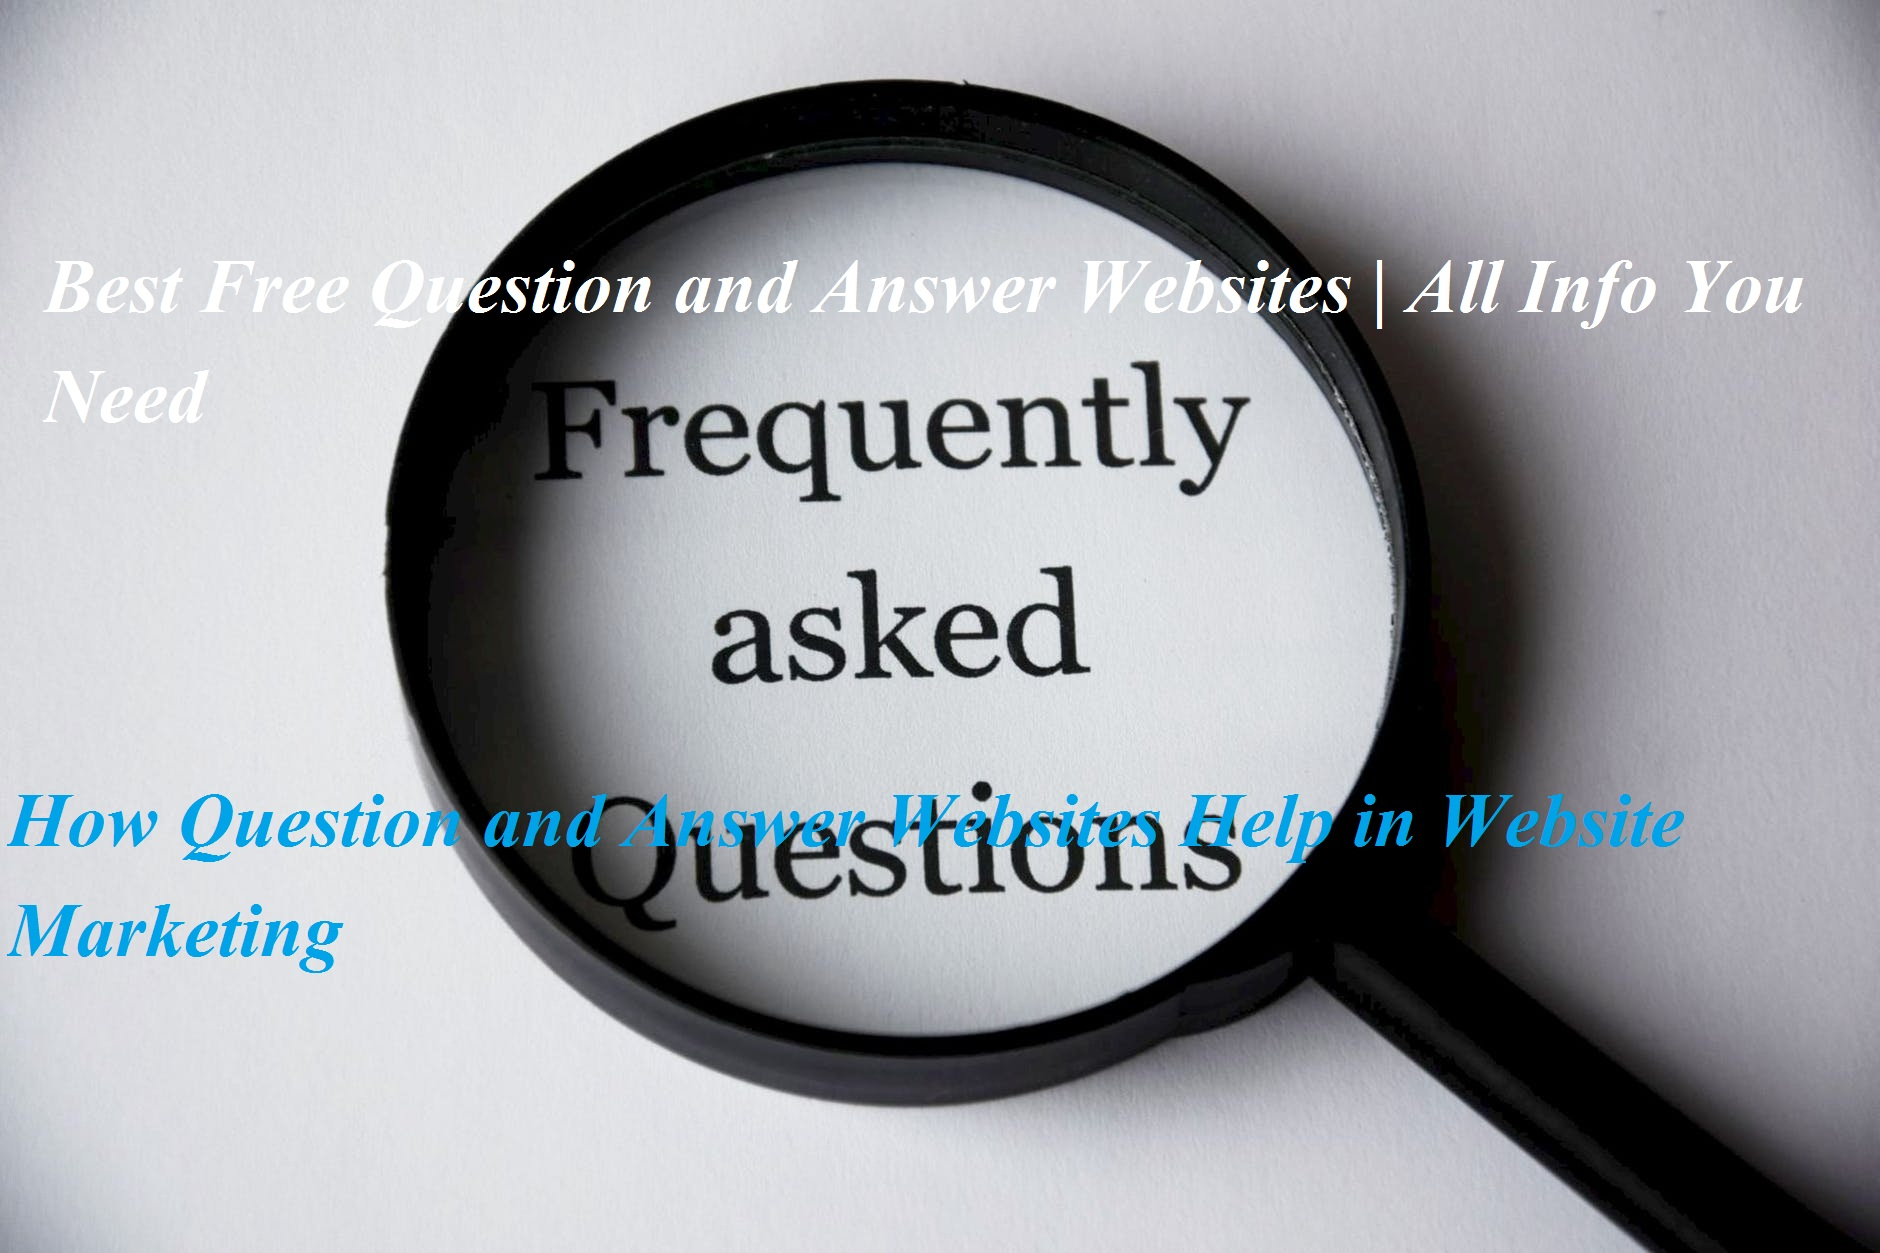 Free Question and Answer Websites